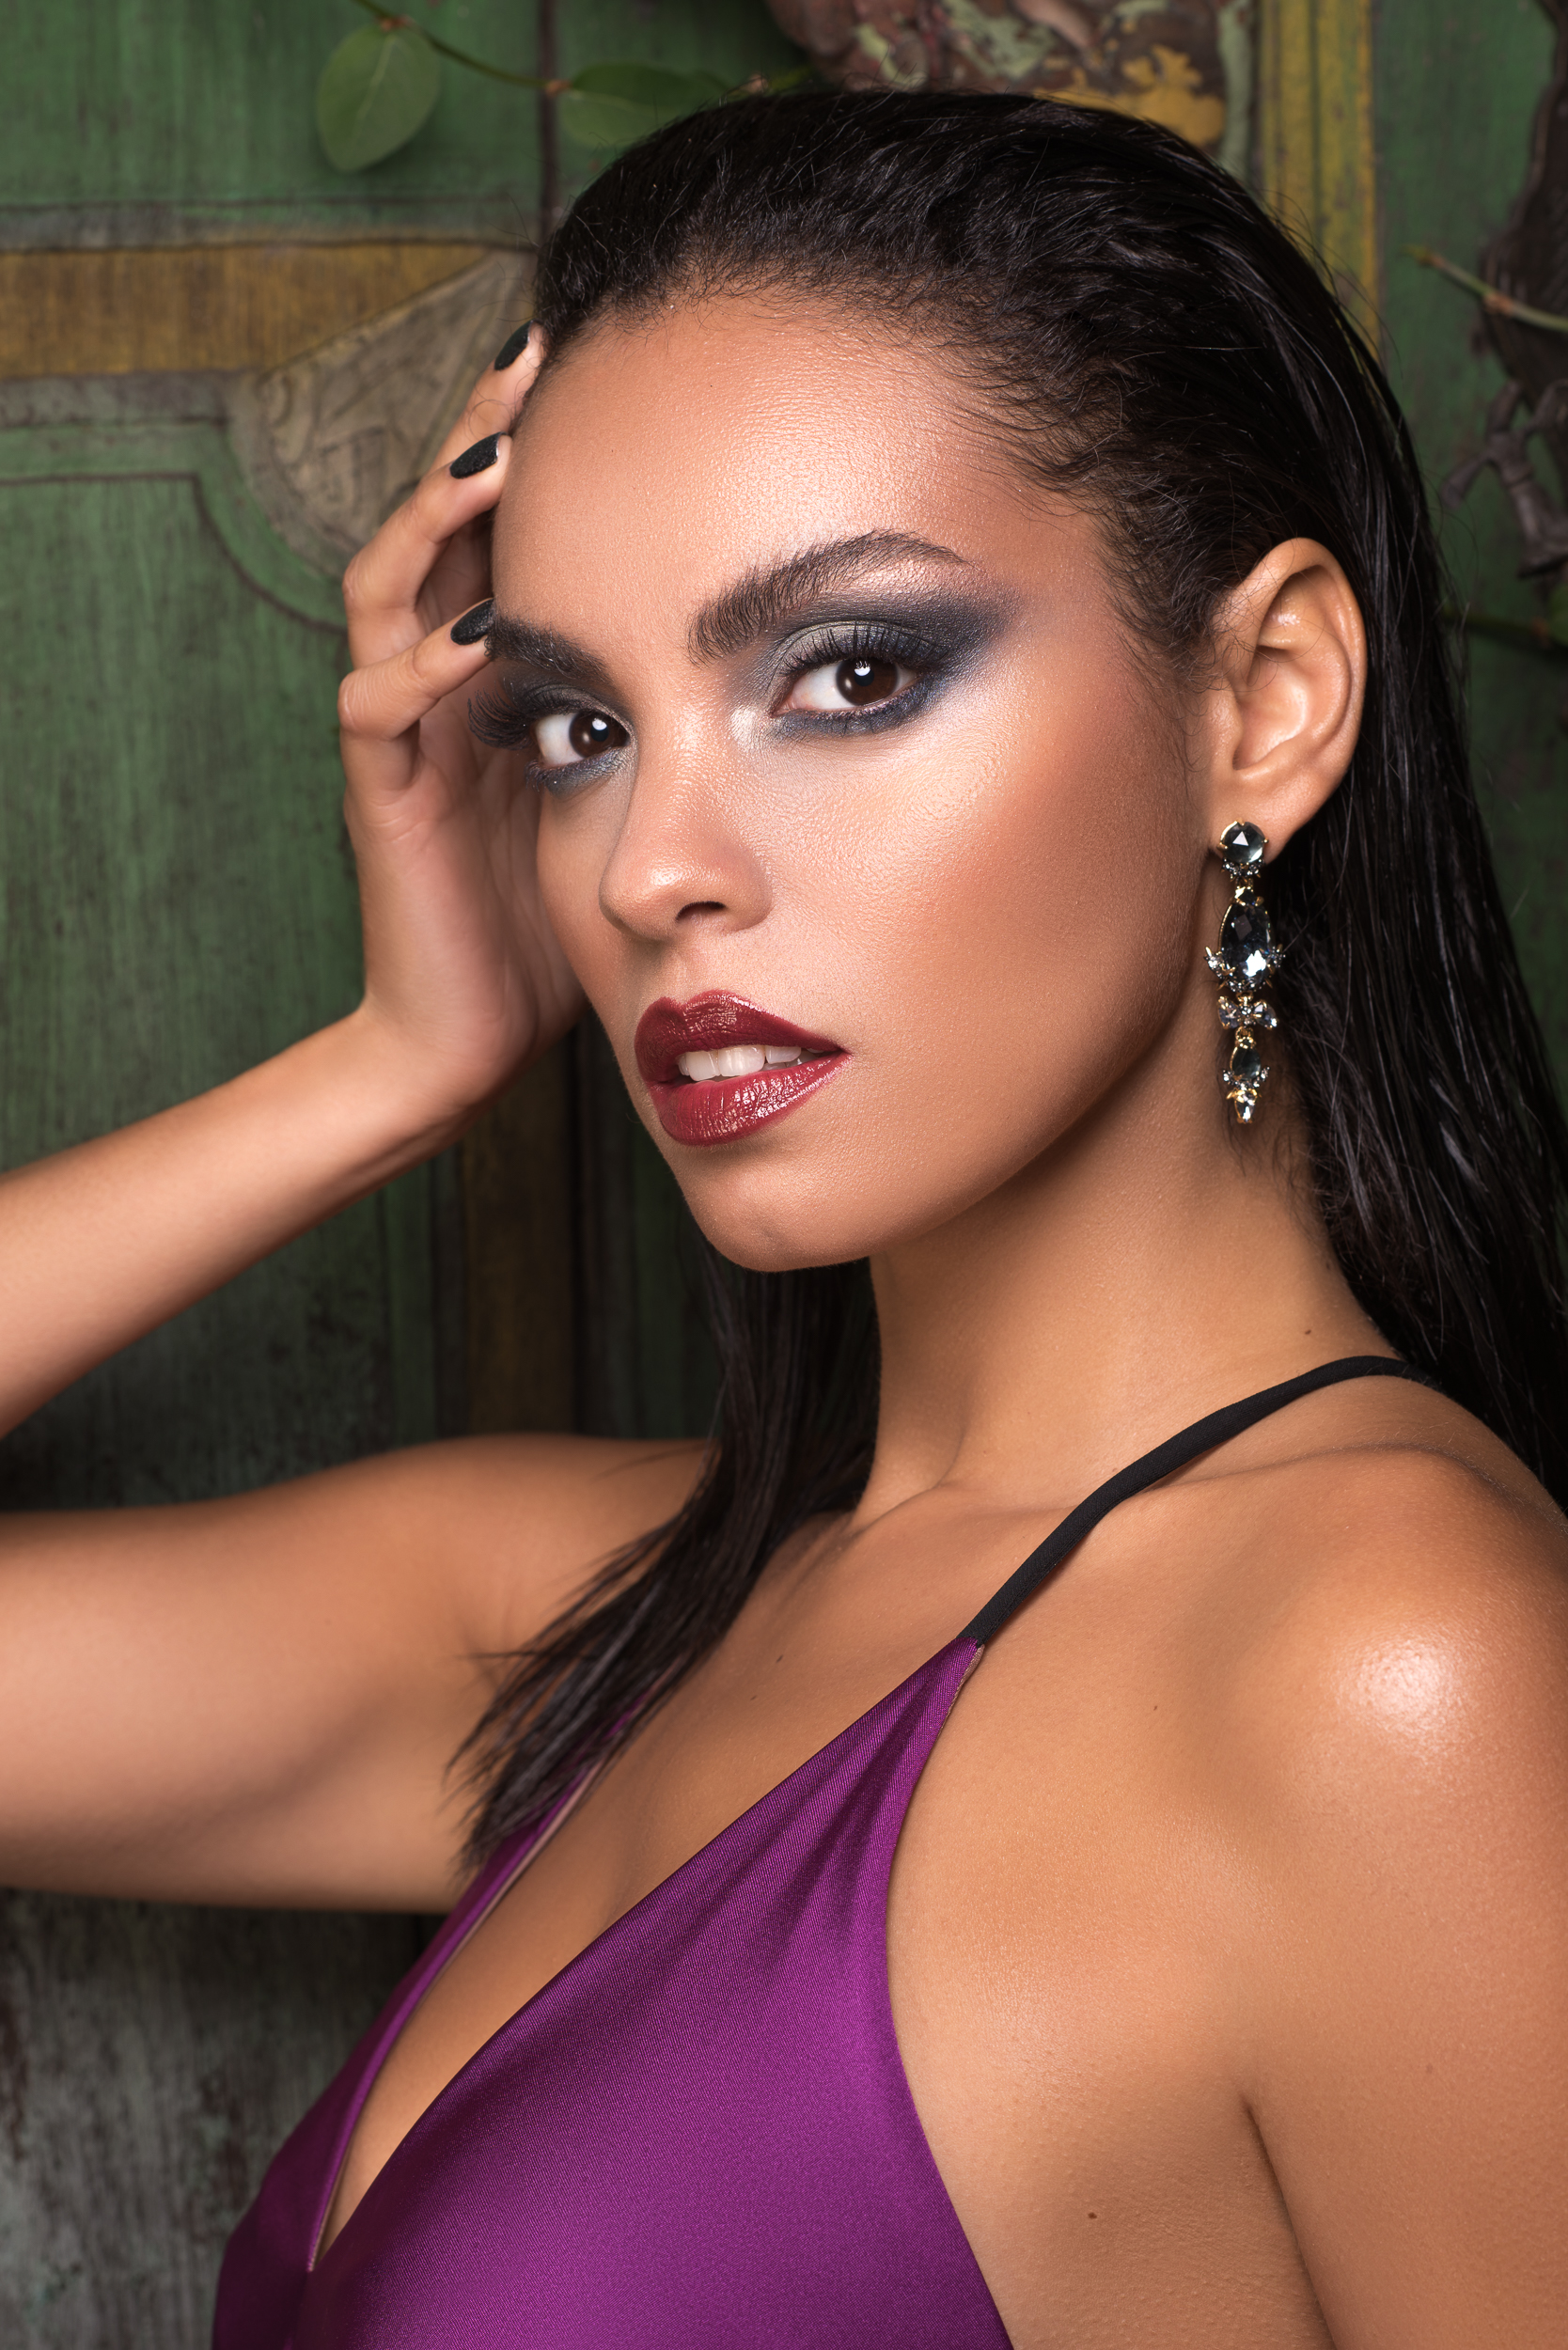 Los Angeles Beauty photographer - Beatriz jungle beauty 03.jpg